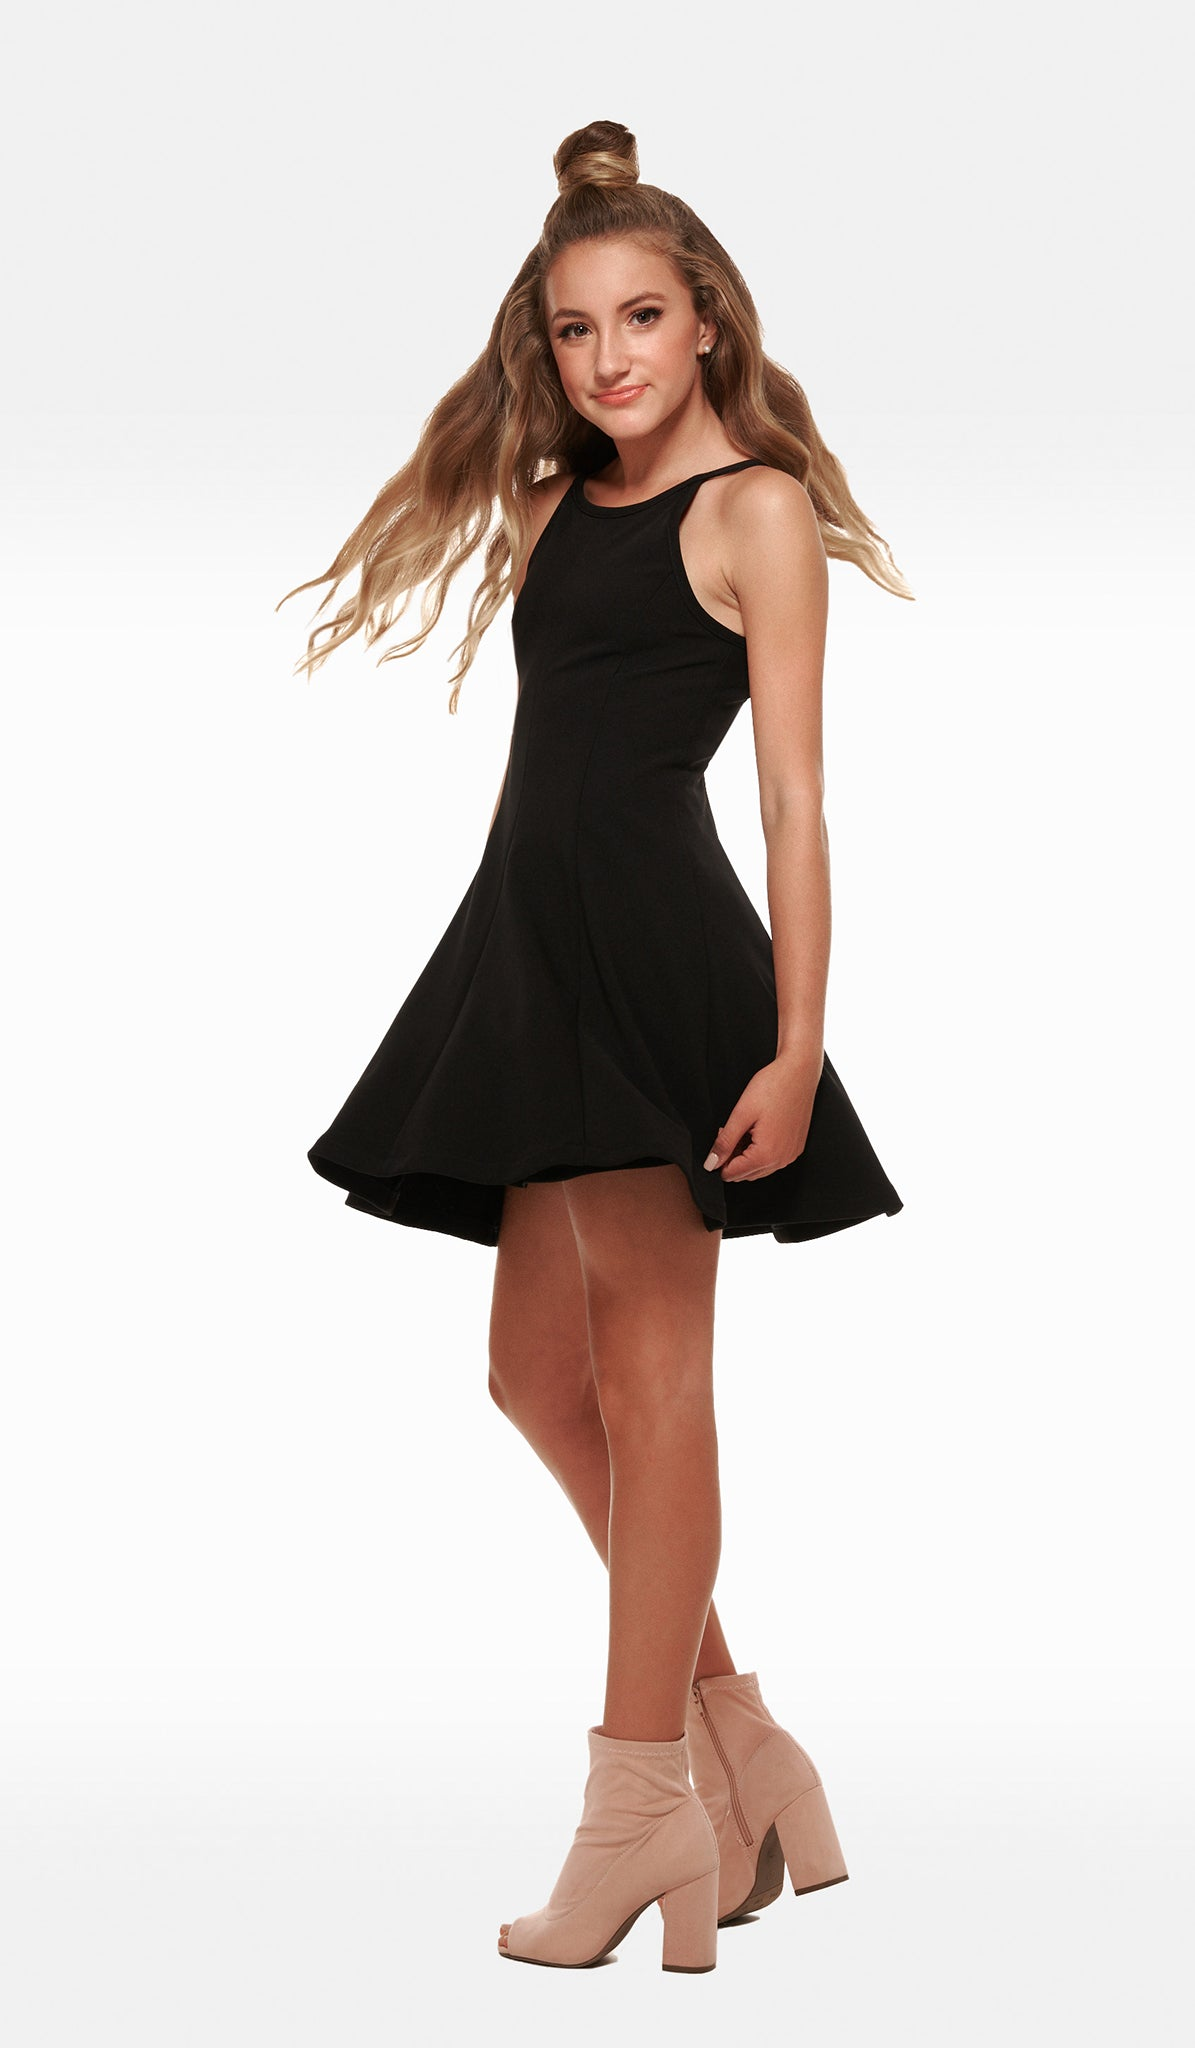 THE SERENA DRESS - Sallymiller.com - [variant title] - | Event & Party Dresses for Tween Girls & Juniors | Weddings Dresses, Bat Mitzvah Dresses, Sweet Sixteen Dresses, Graduation Dresses, Birthday Party Dresses, Bar Mitzvah Dresses, Cotillion Dresses